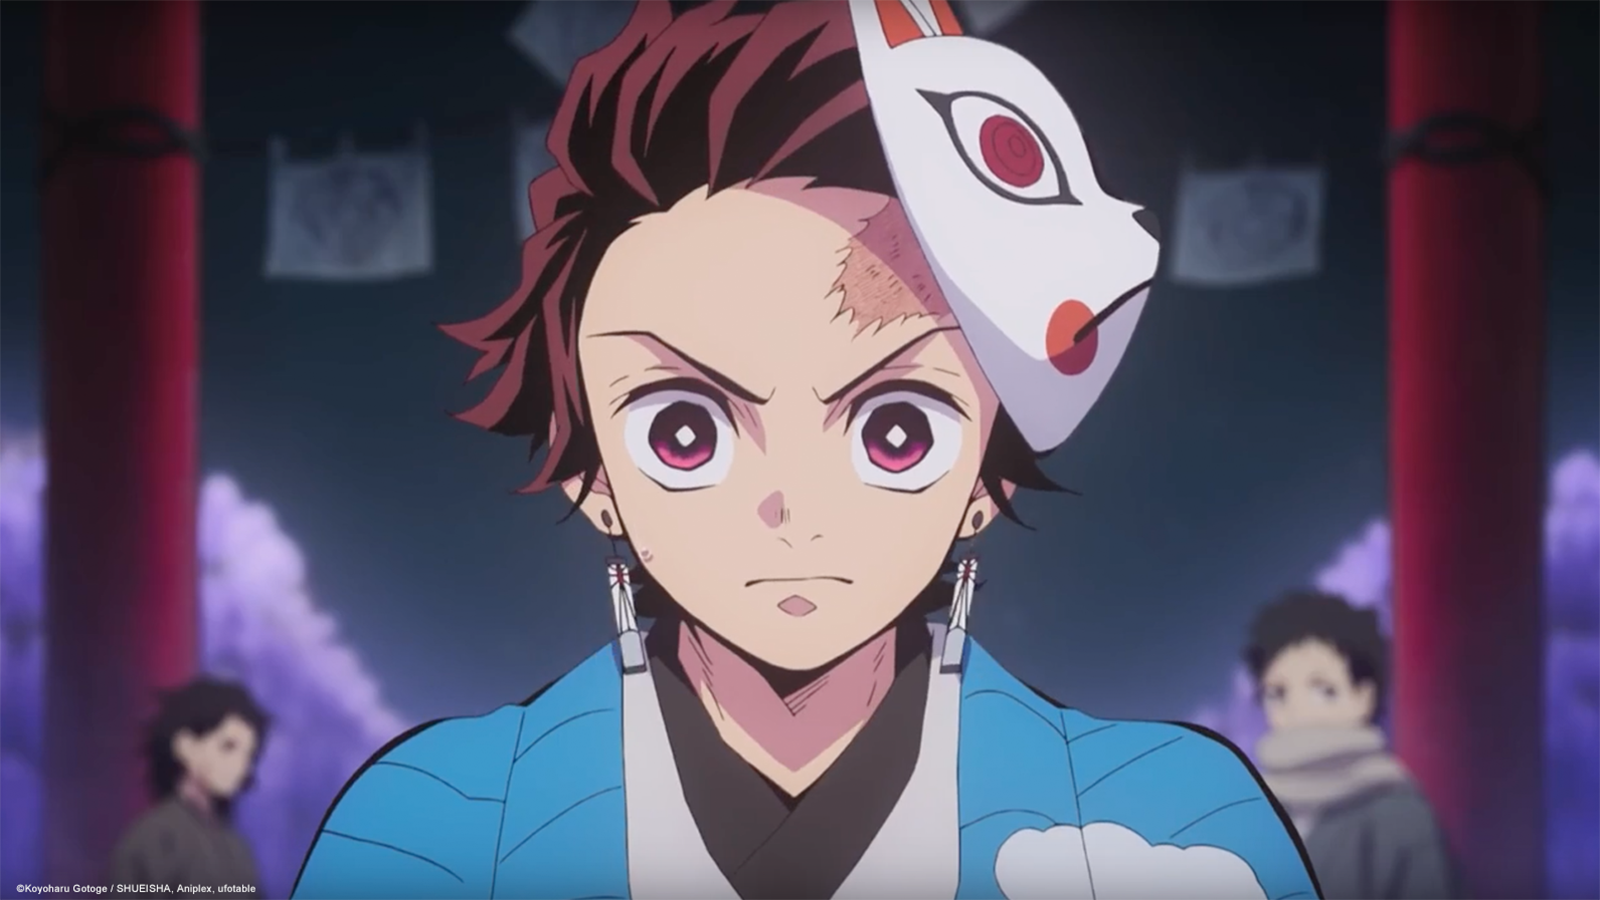 Tanjiro from Demon Slayer looks into forward with a mask on his head